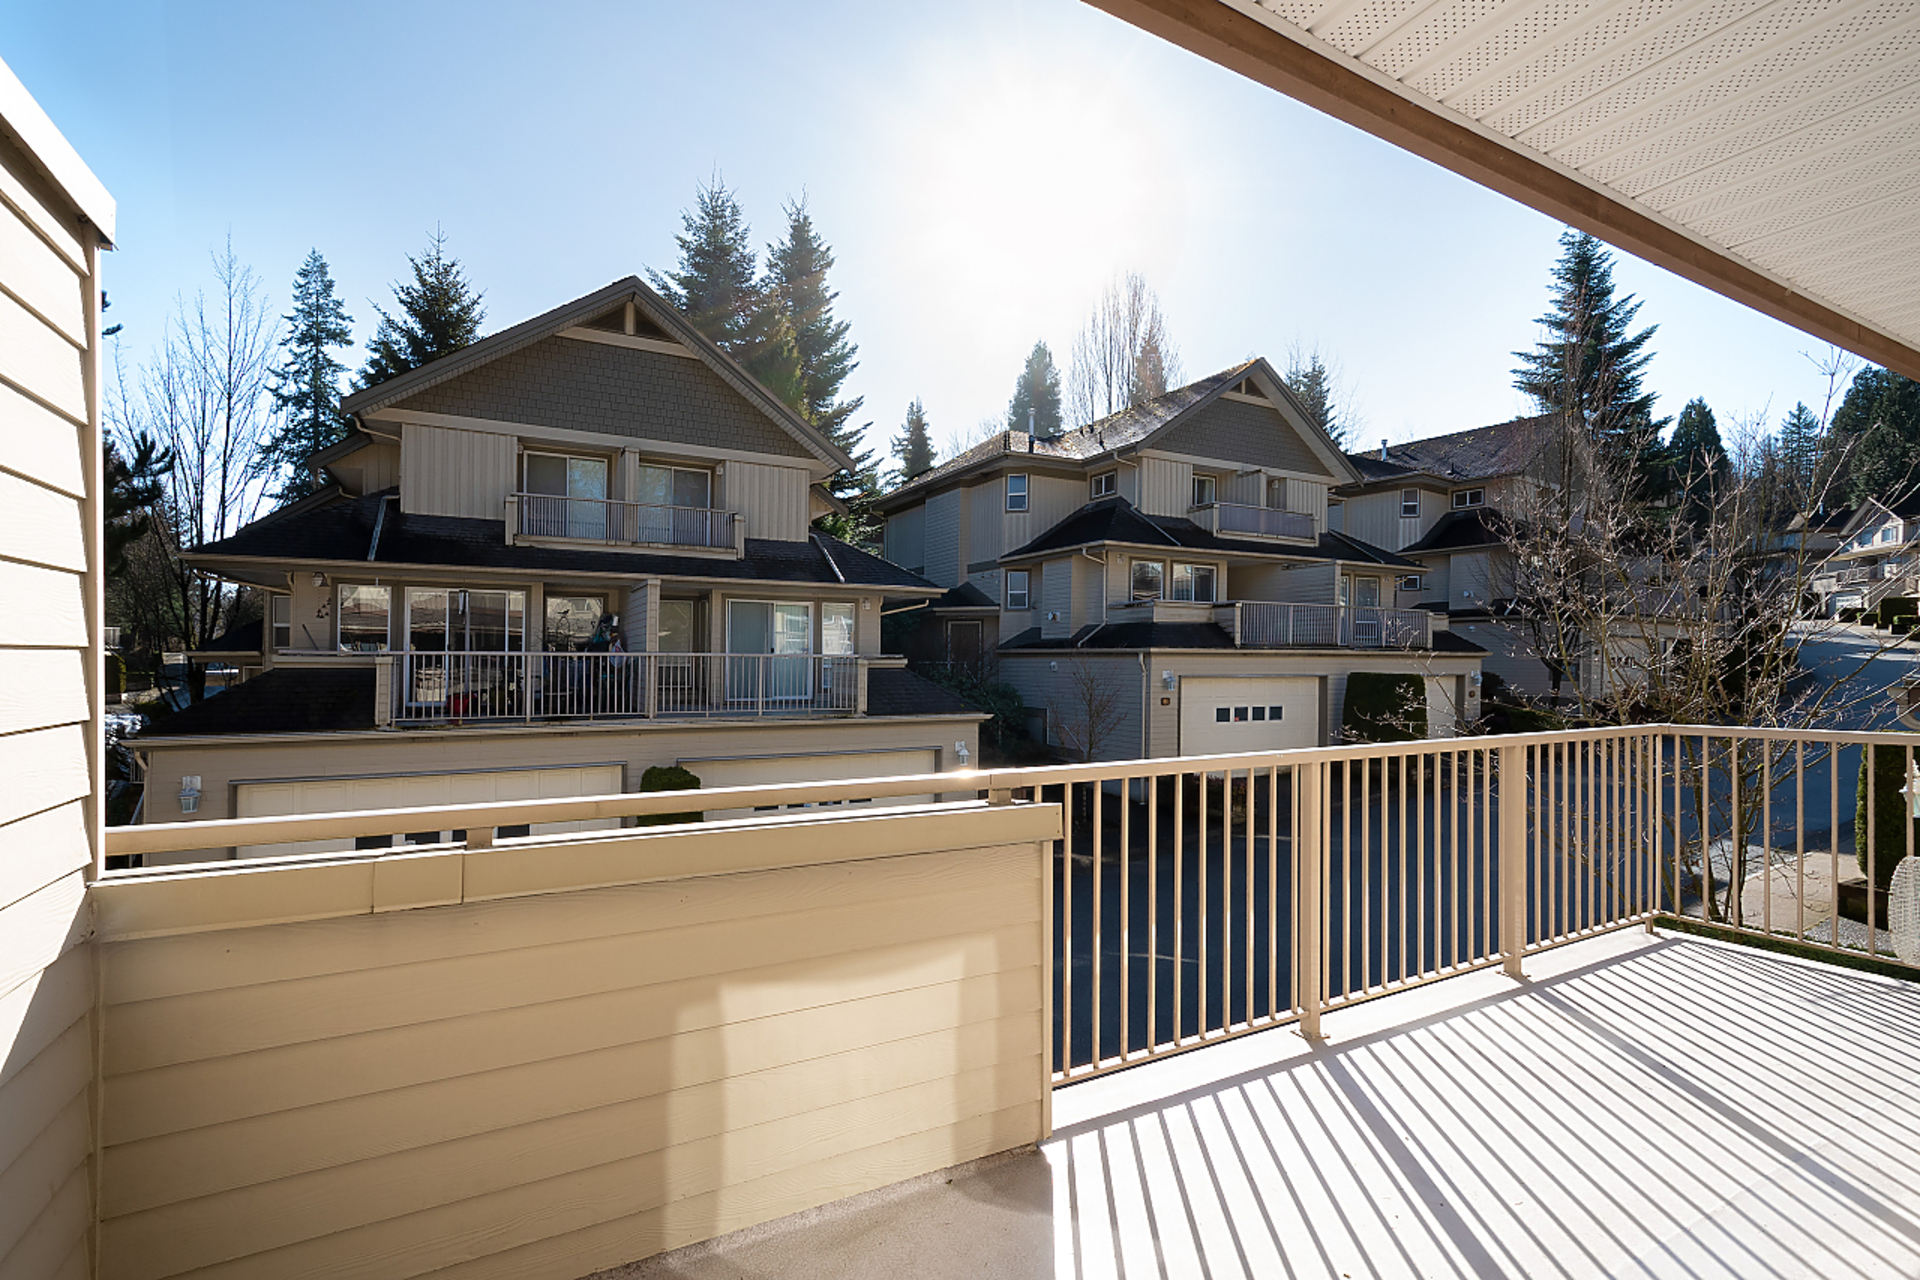 011 at 72 - 8701 16th Avenue, The Crest, Burnaby East